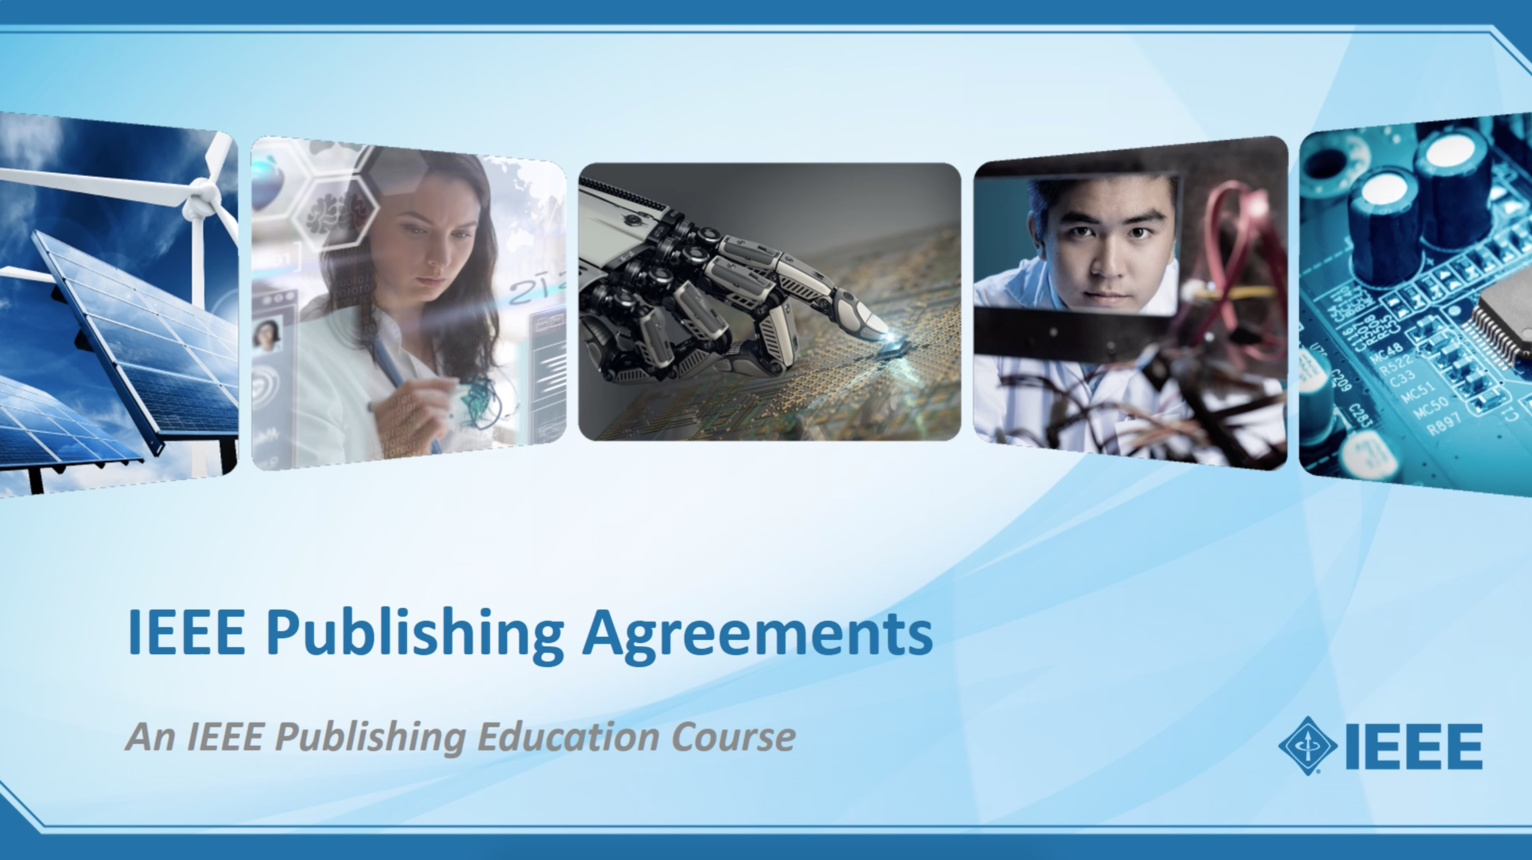 IEEE Publishing Agreements